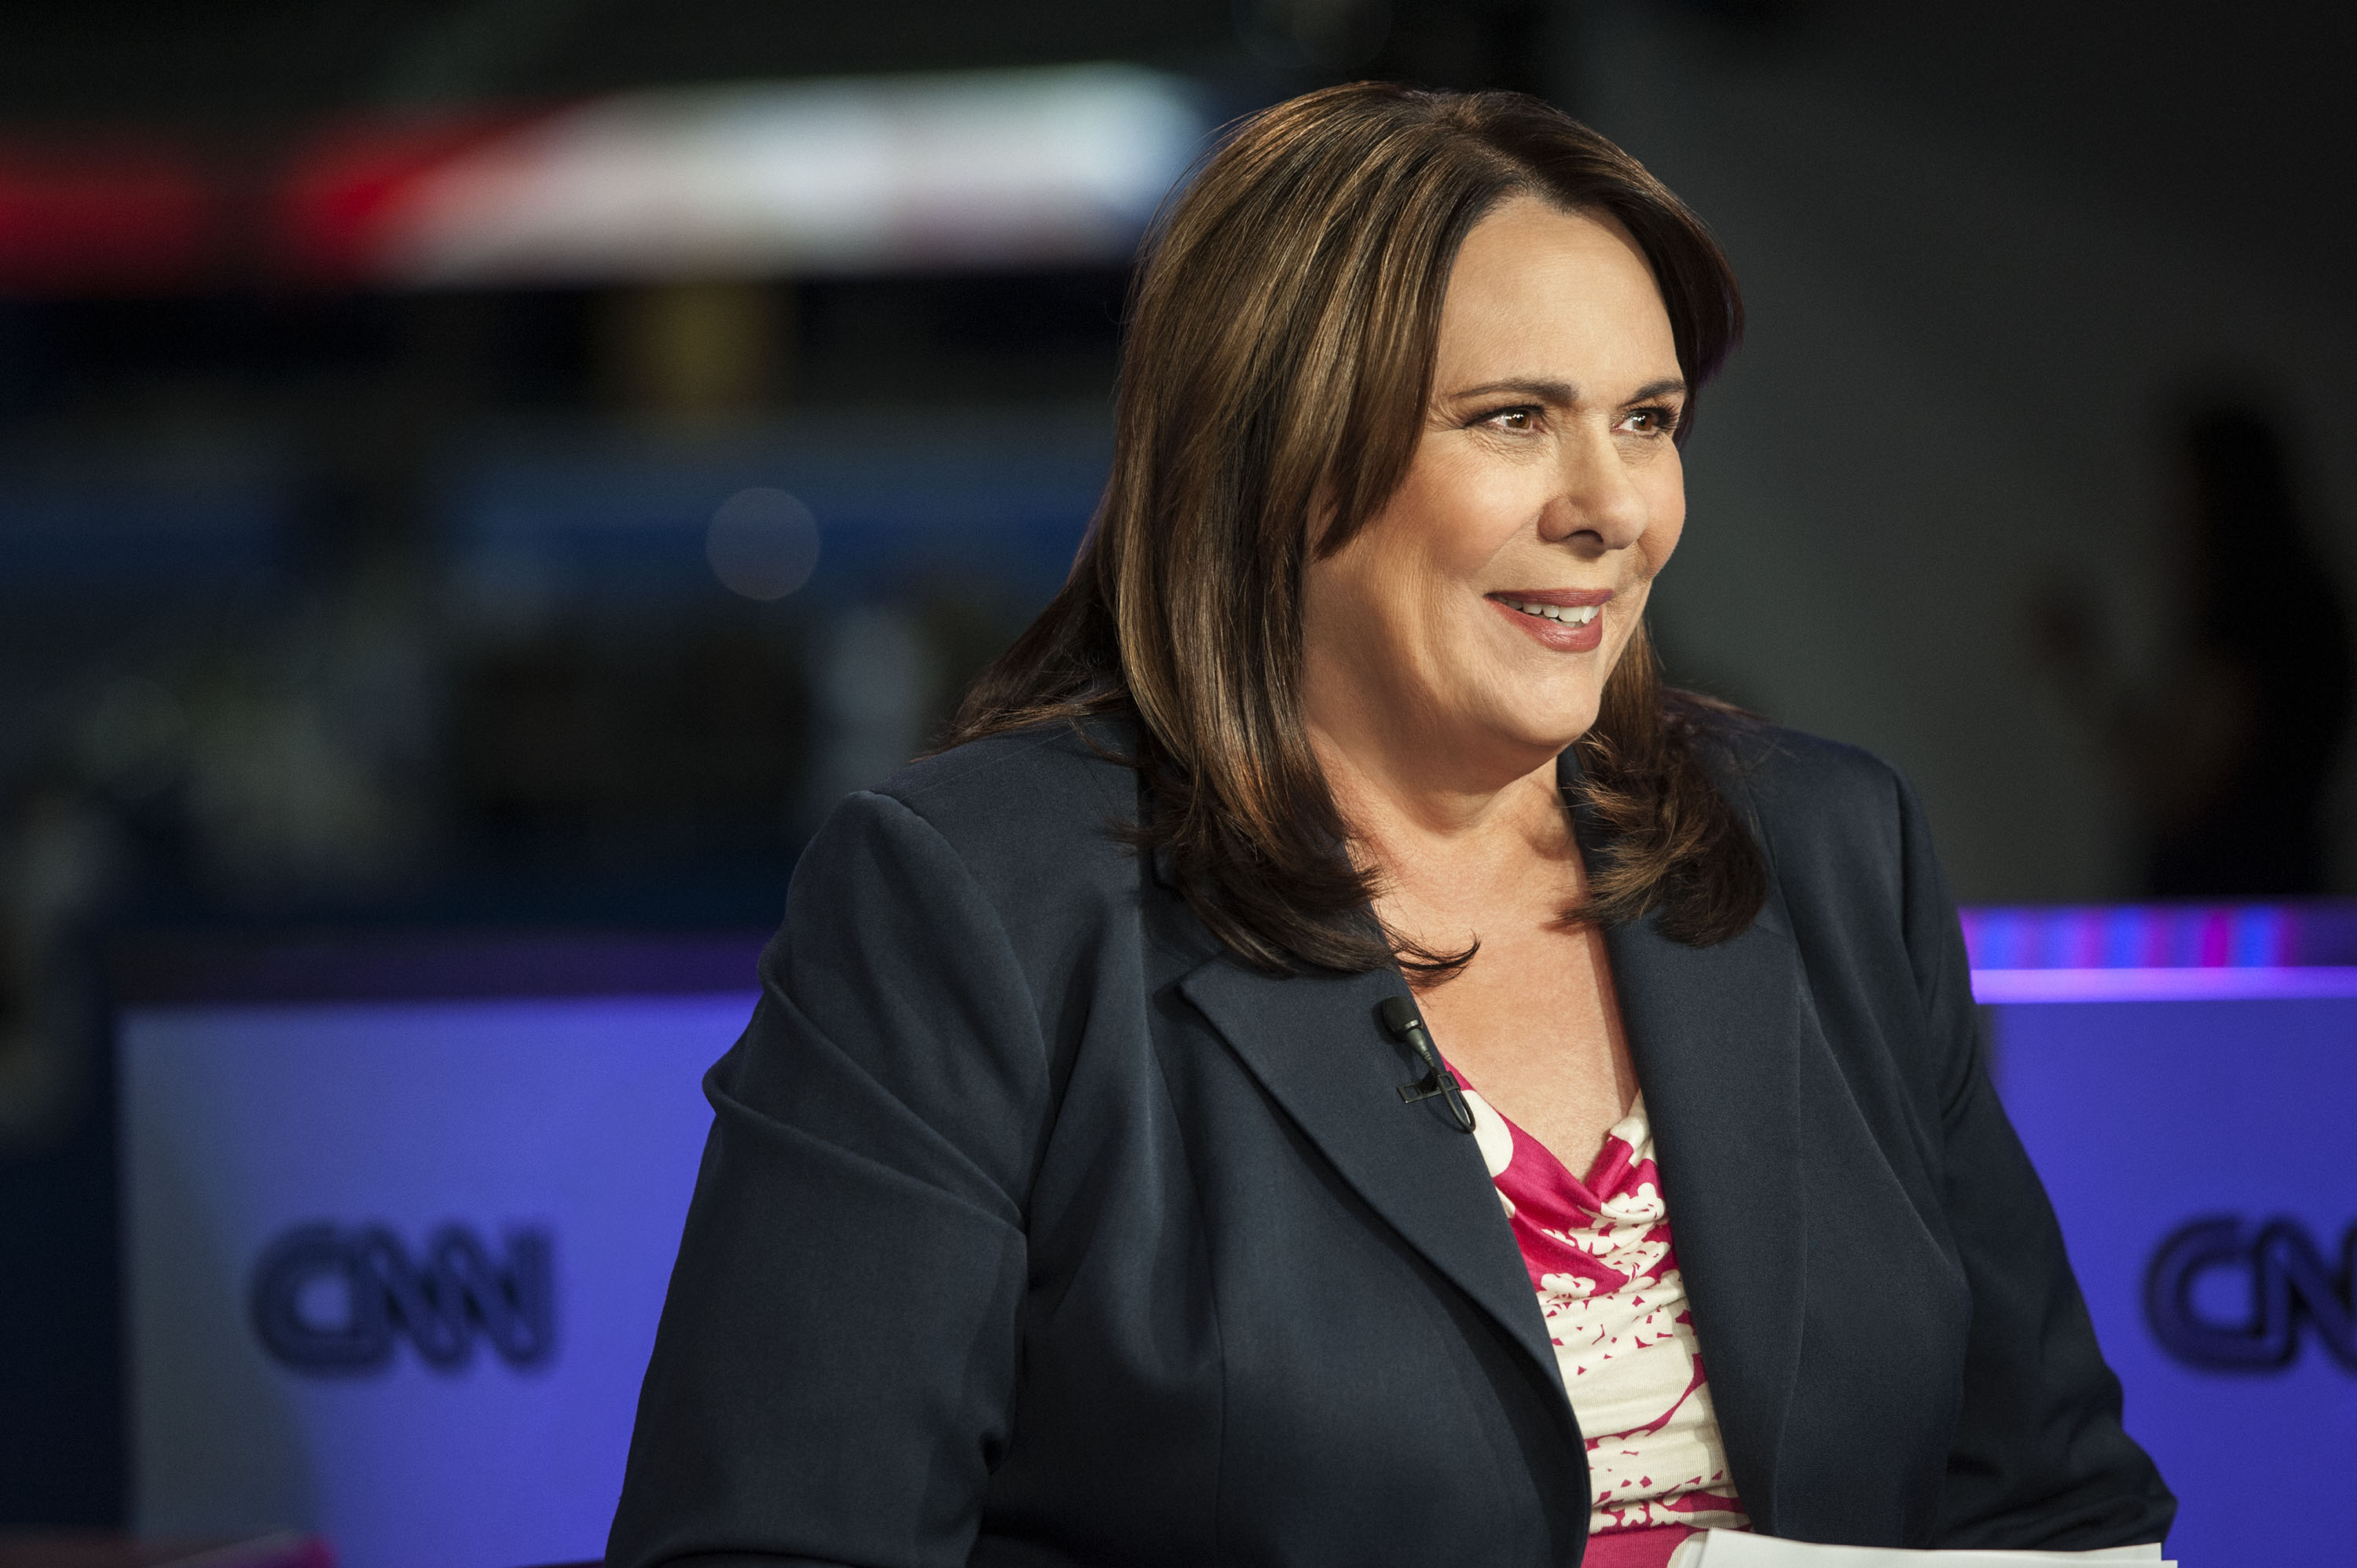 Coverage Plans for Tonight's Presidential Town Hall Debate moderated by CNN's Candy Crowley